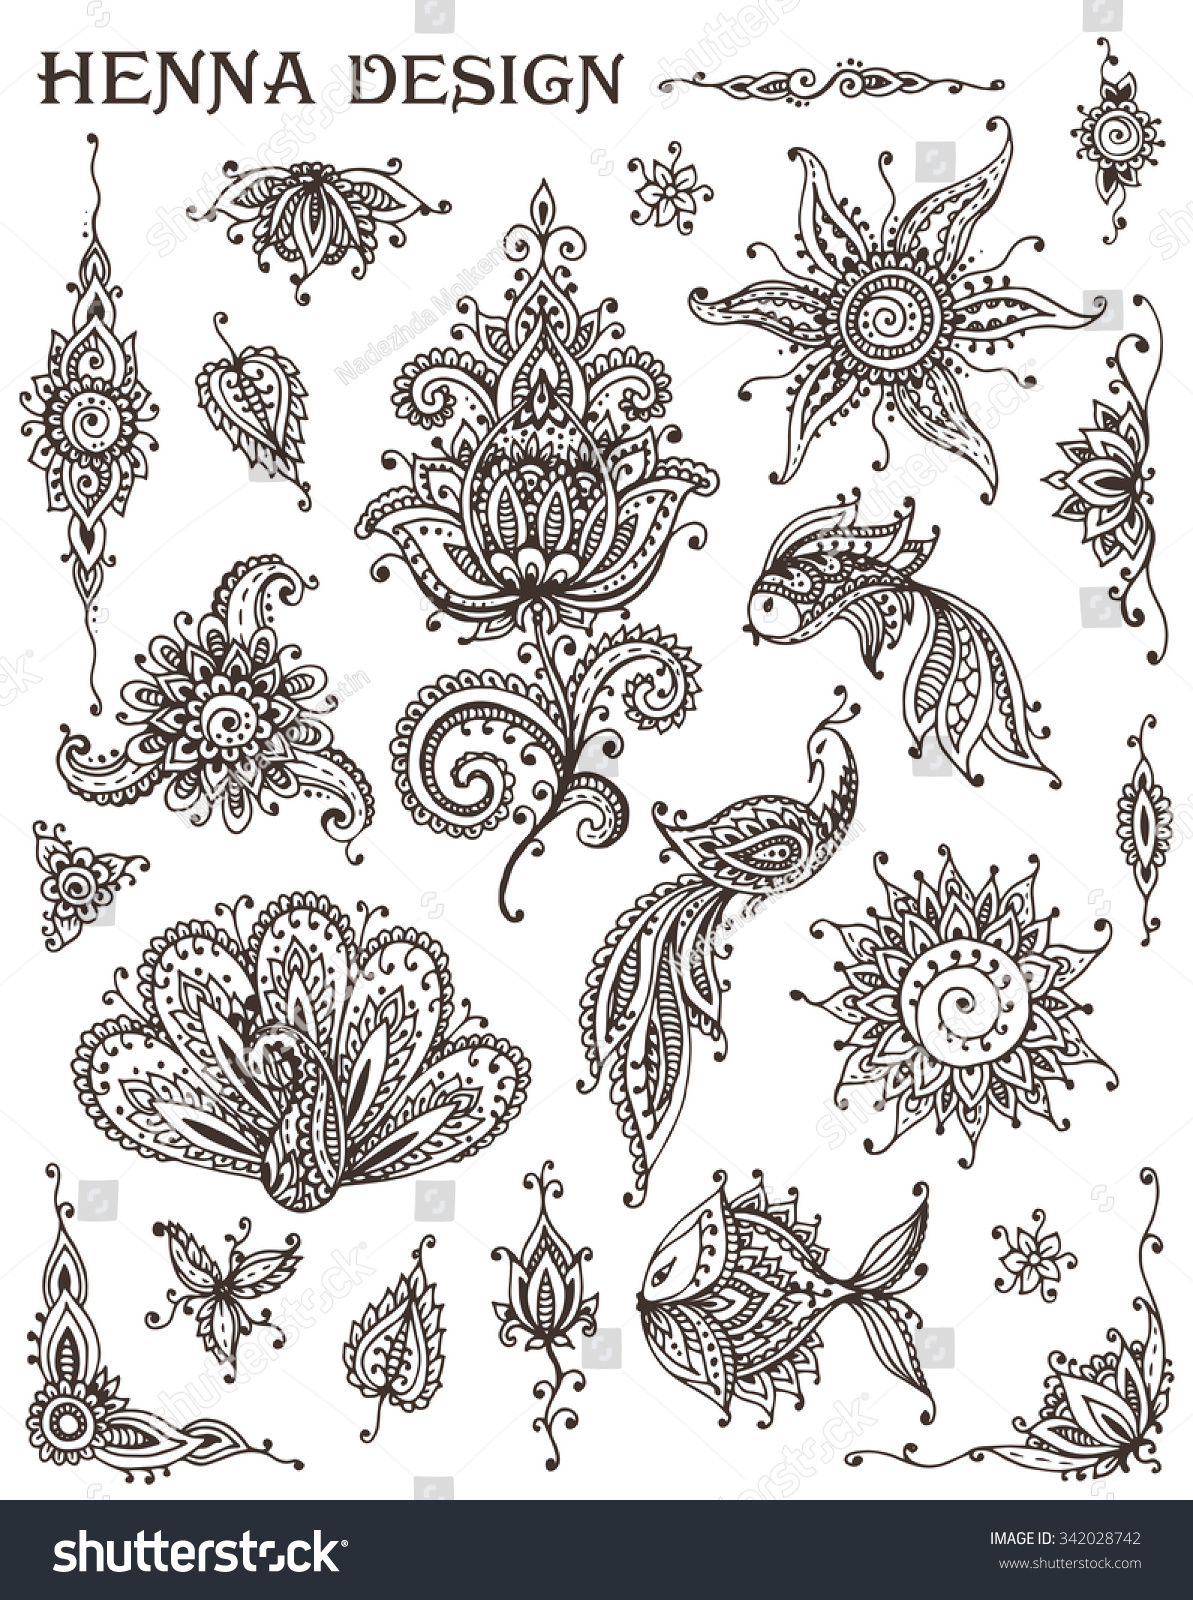 Animal ornaments - Vector Set Of Henna Floral And Animal Elements Based On Traditional Asian Ornaments Paisley Mehndi